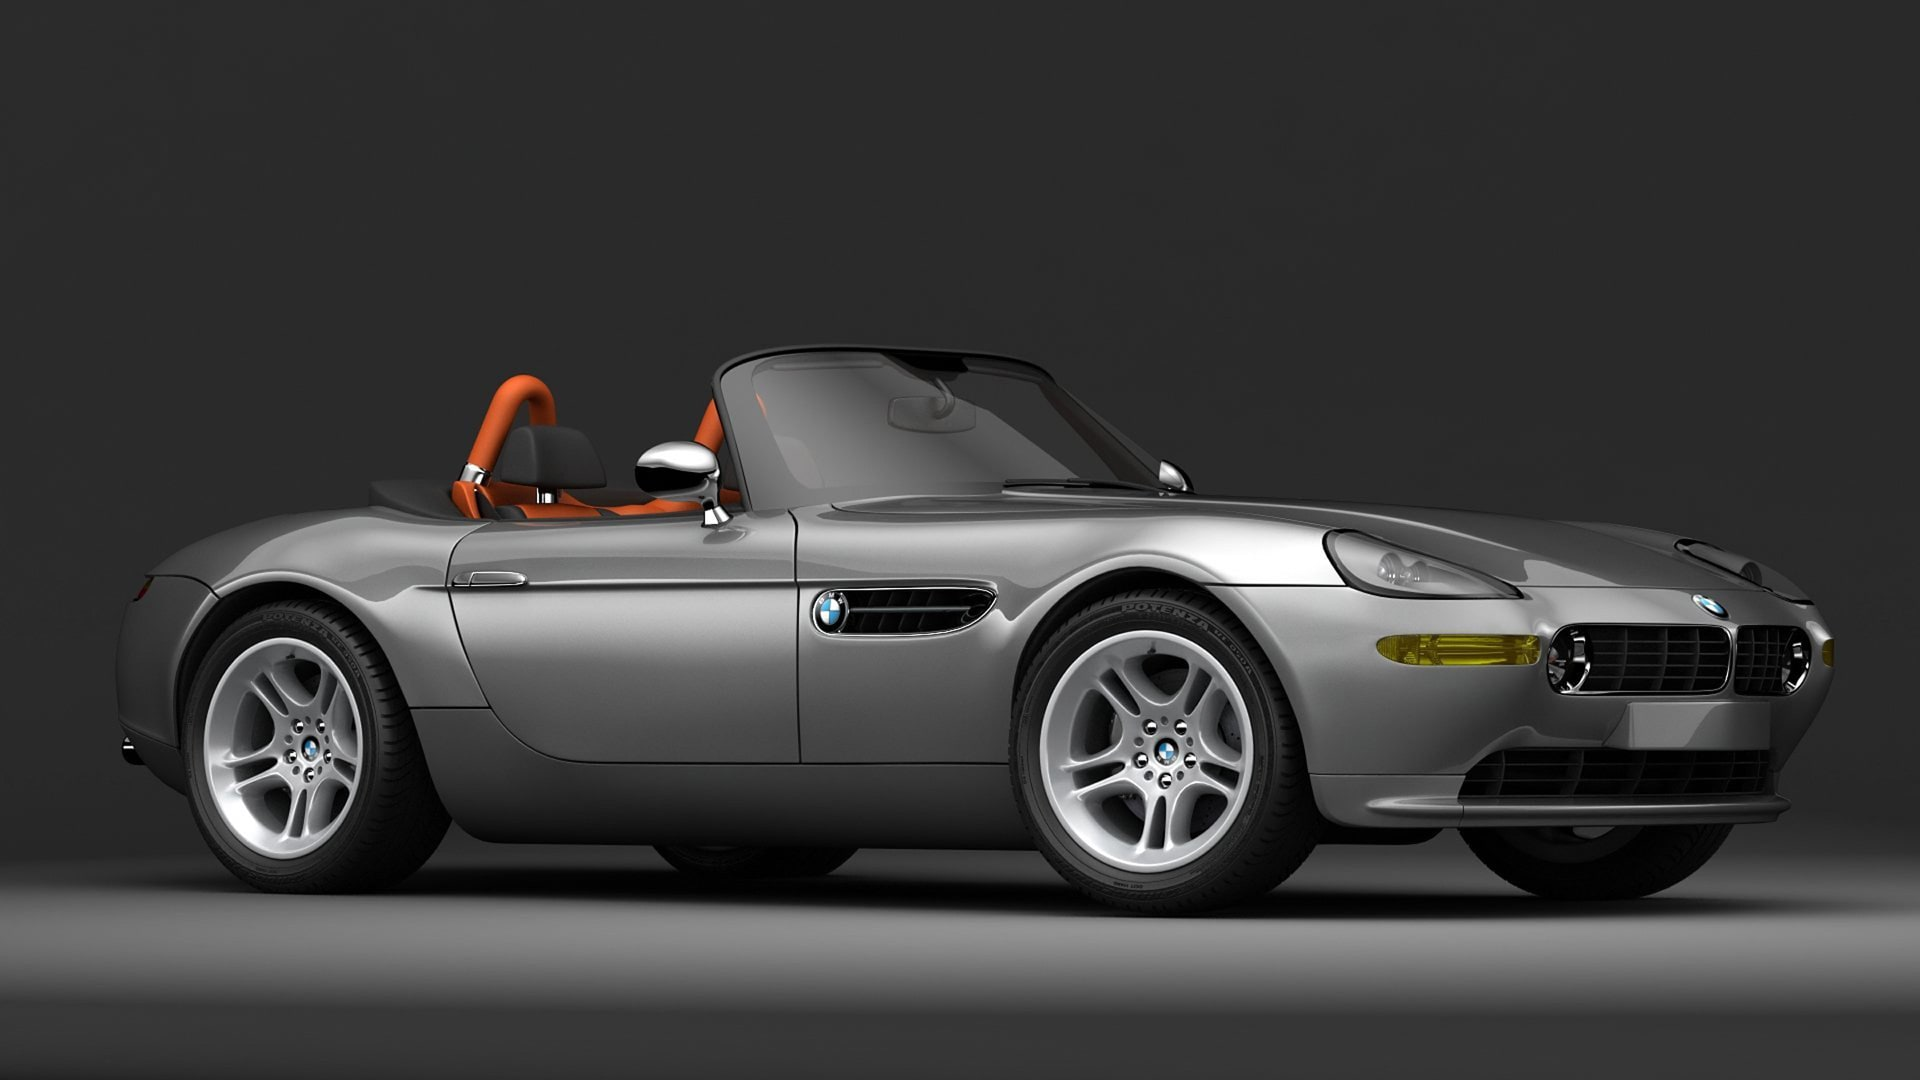 BMW Z8 Full hd wallpapers